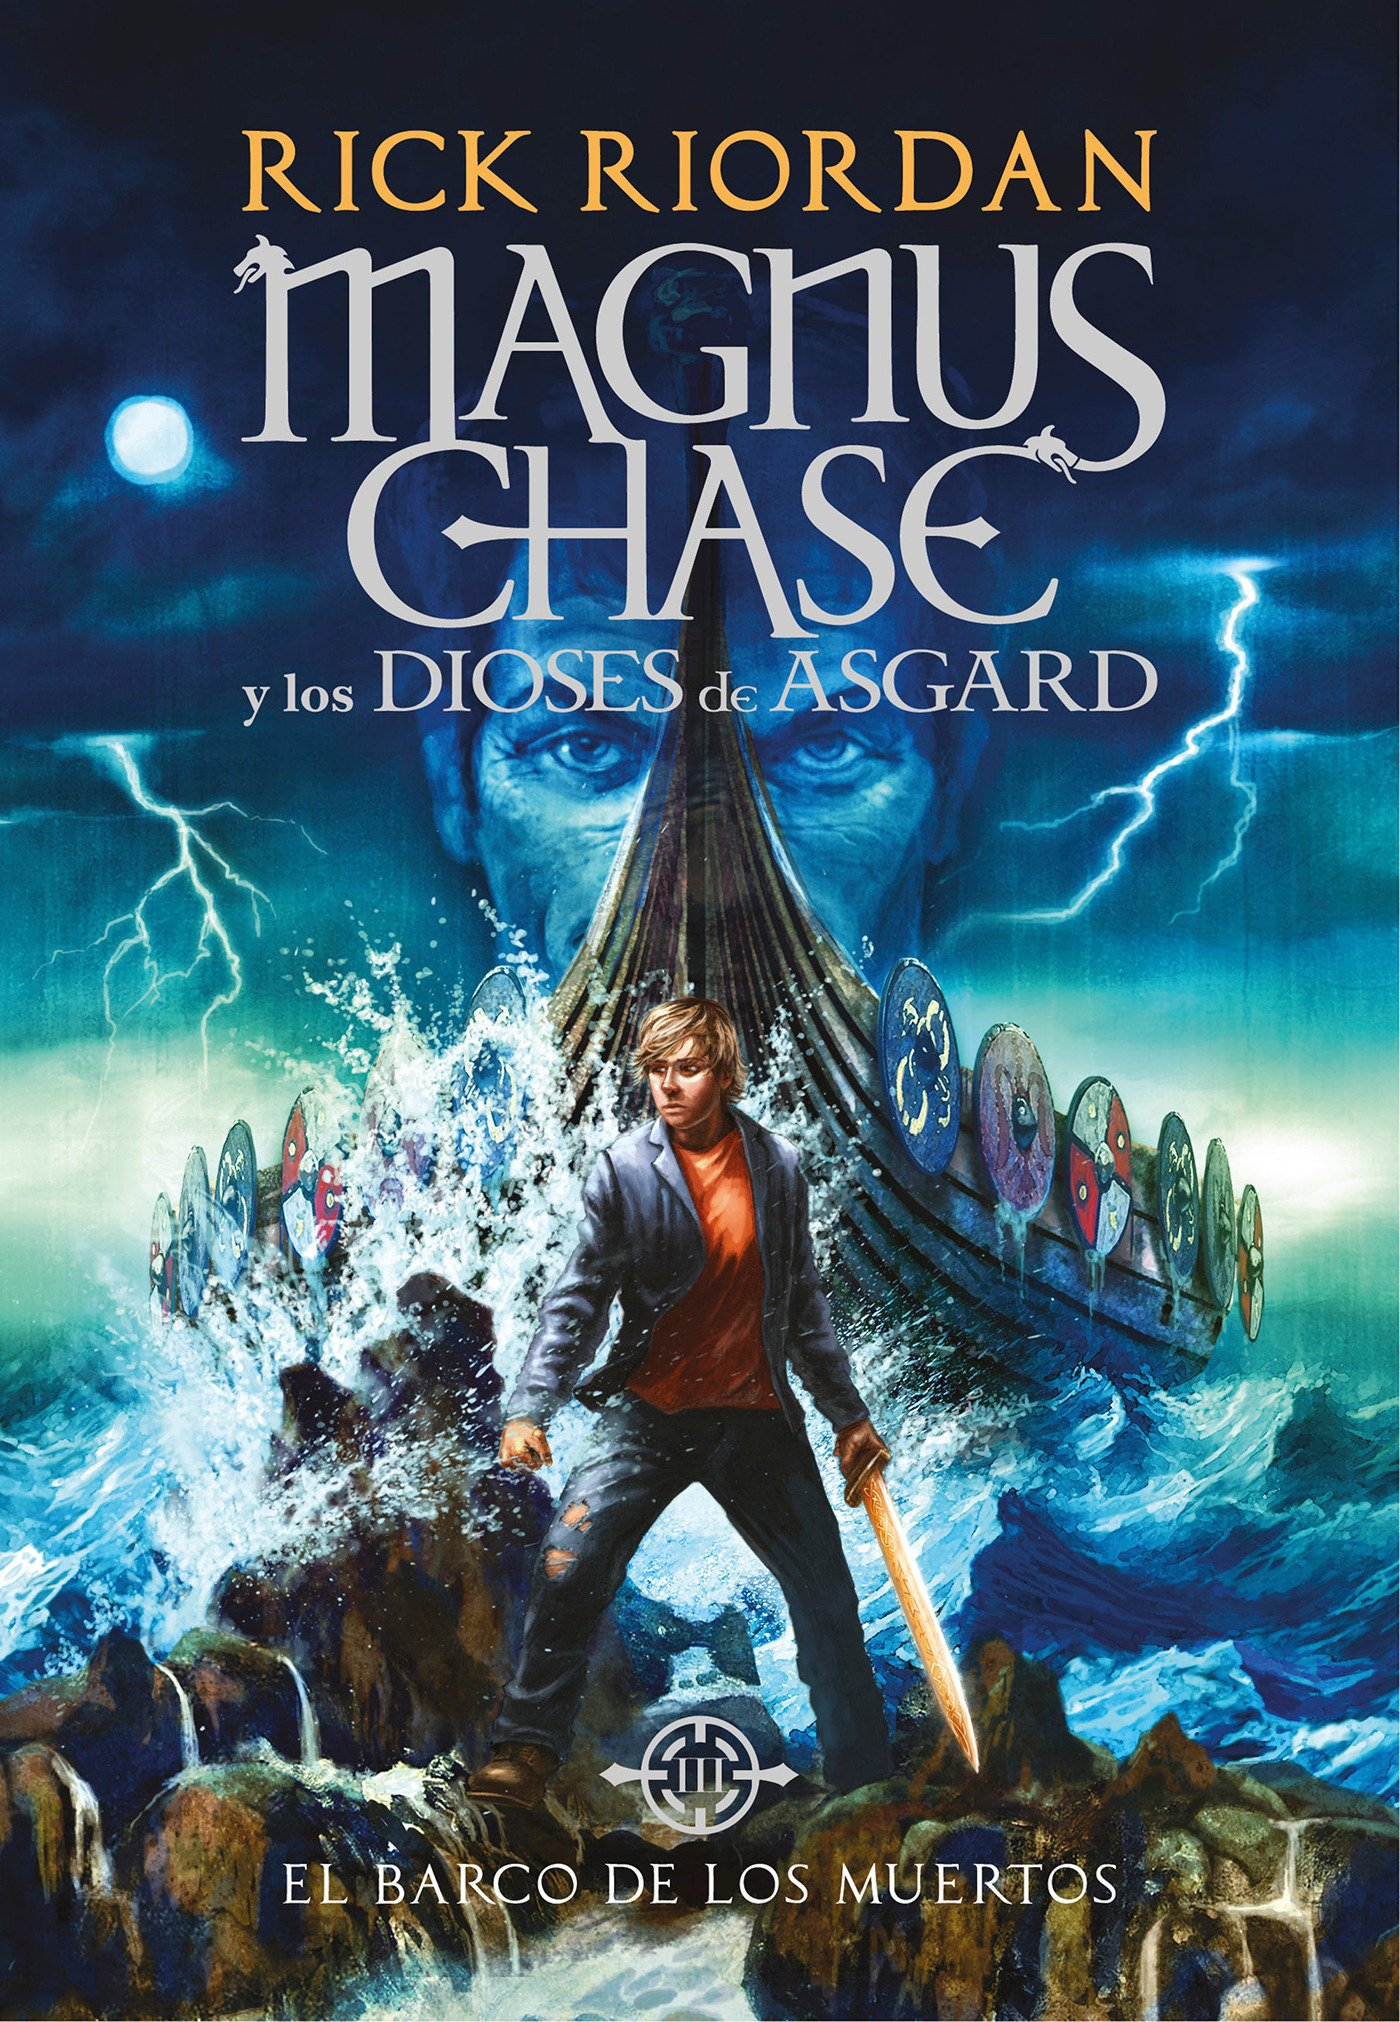 Amazon.com: El barco de los muertos / The Ship of the Dead (Serie Magnus Chase y los Dioses de Asgard / Magnus Chase and the Gods of Asgard) (Spanish ...